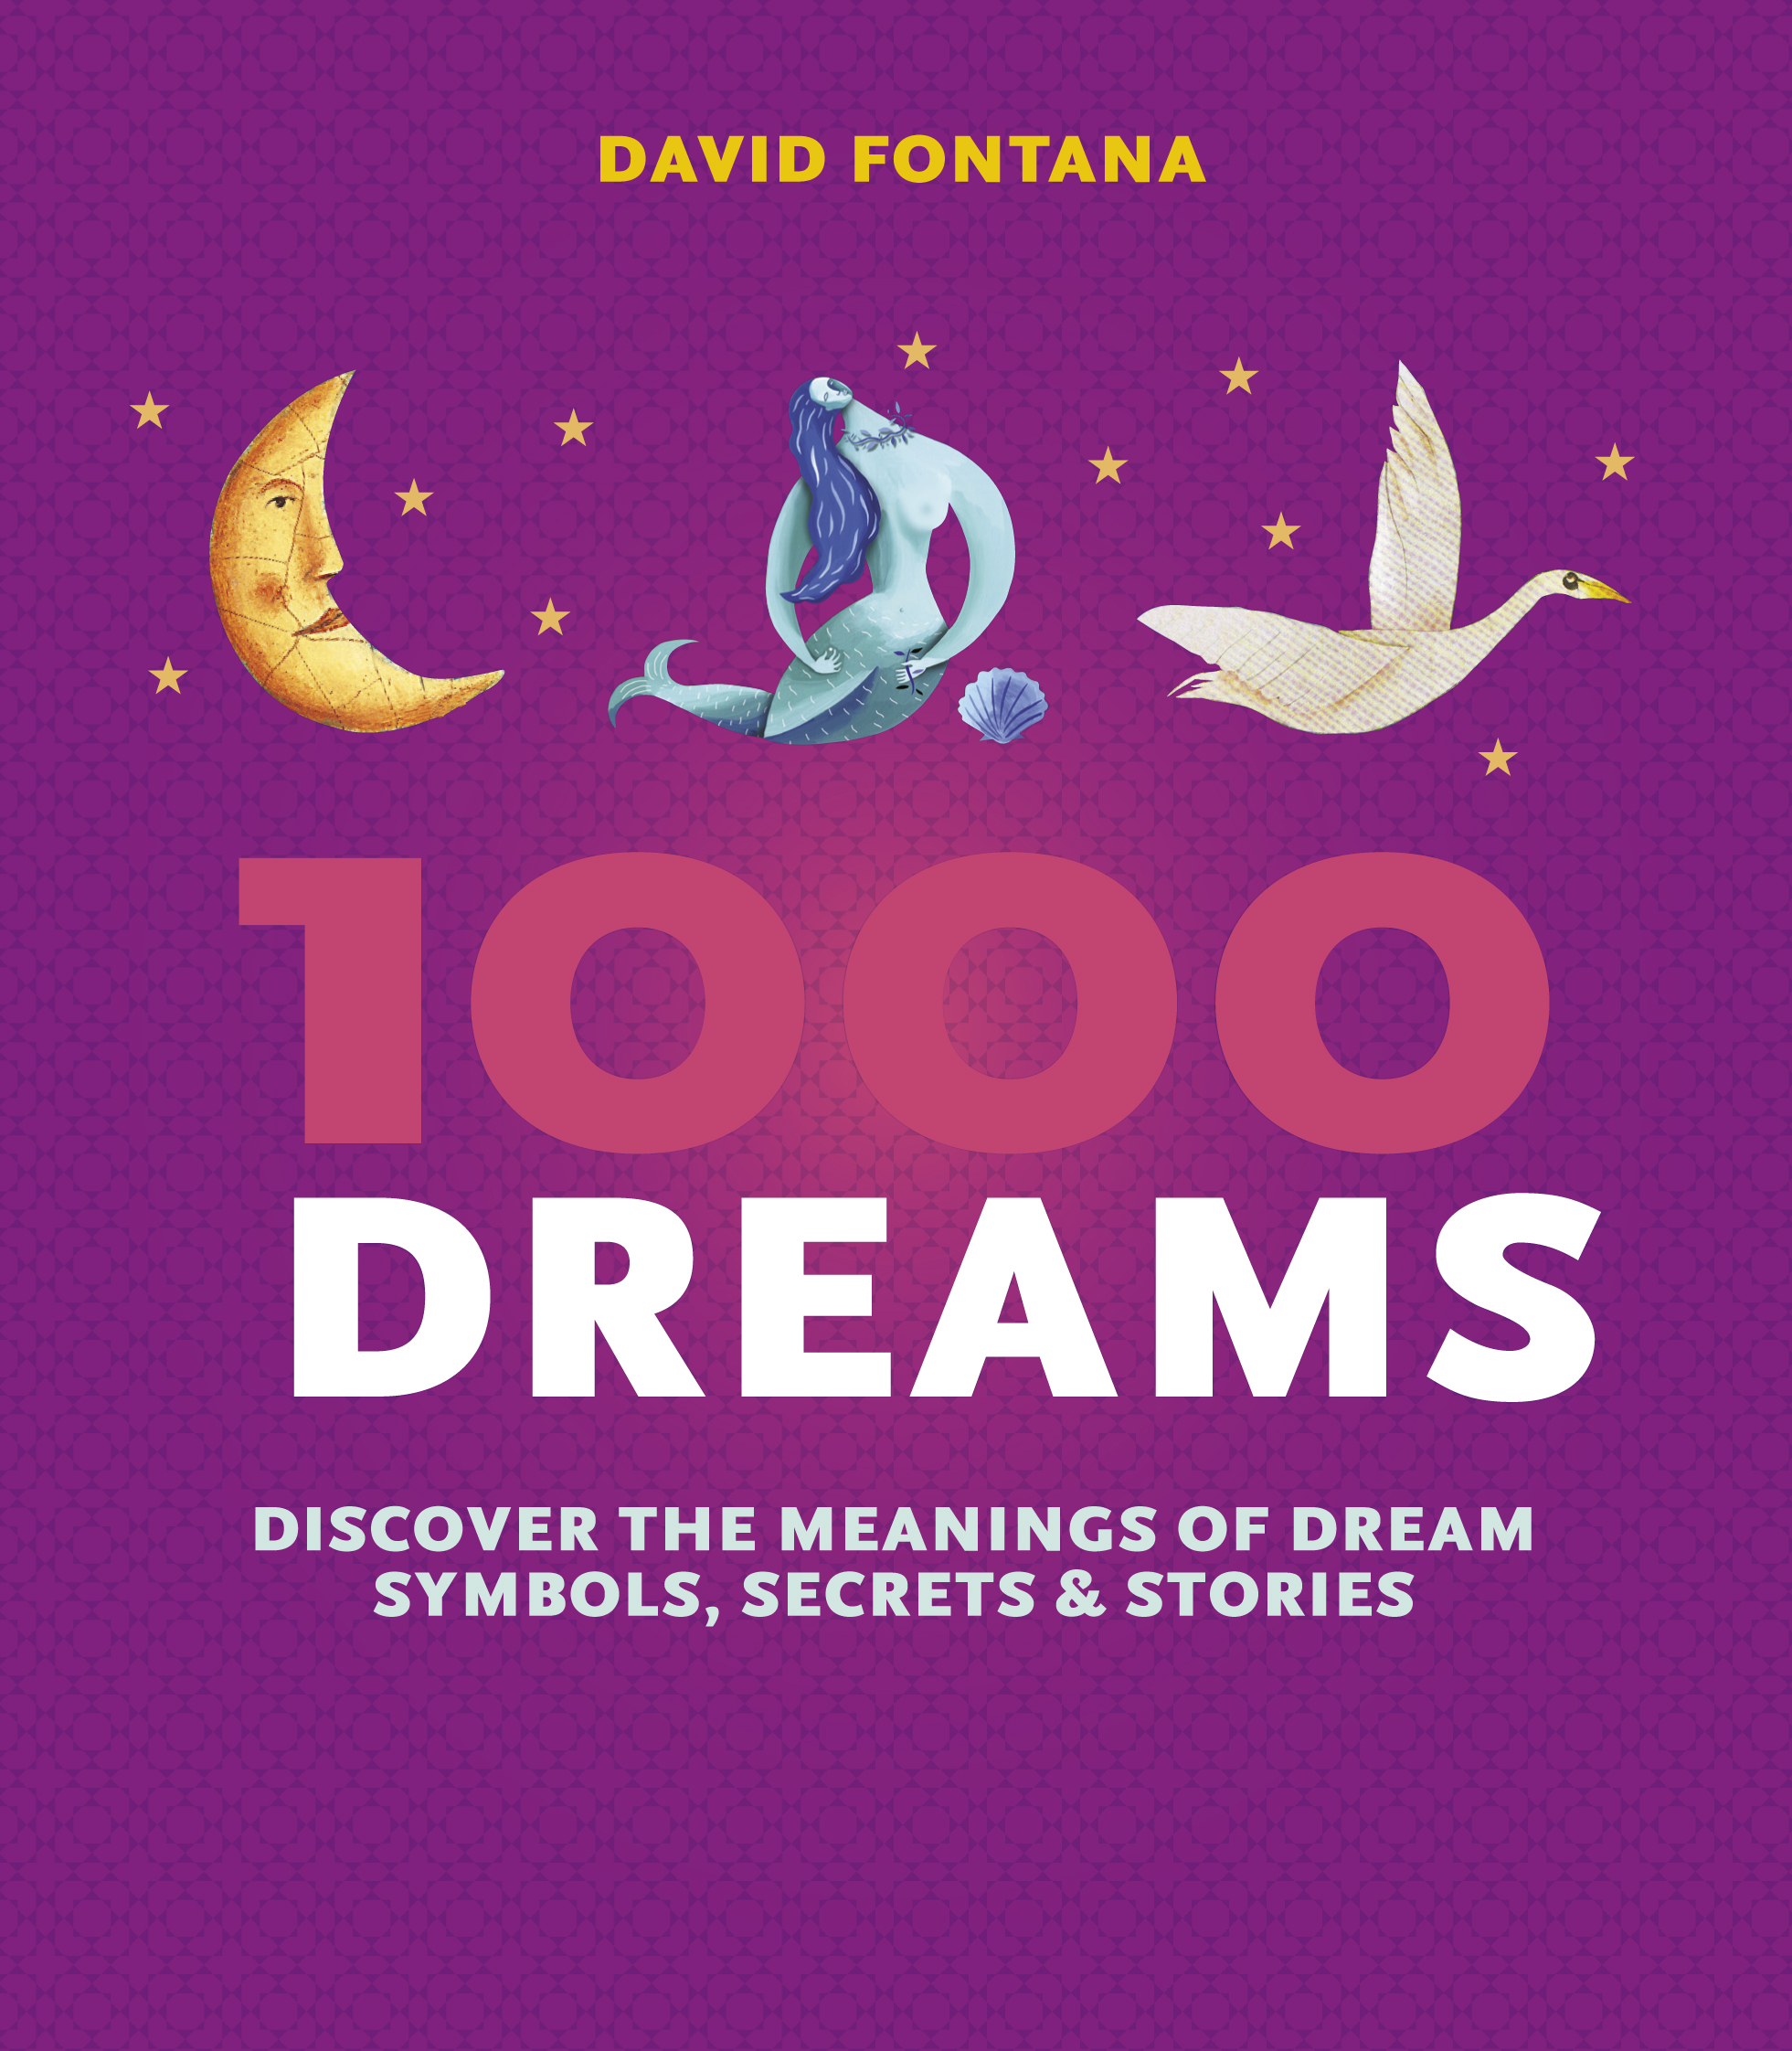 1000 dreams discover the meanings of your dreams by david fontana discover the meanings of dream symbols secrets and stories buycottarizona